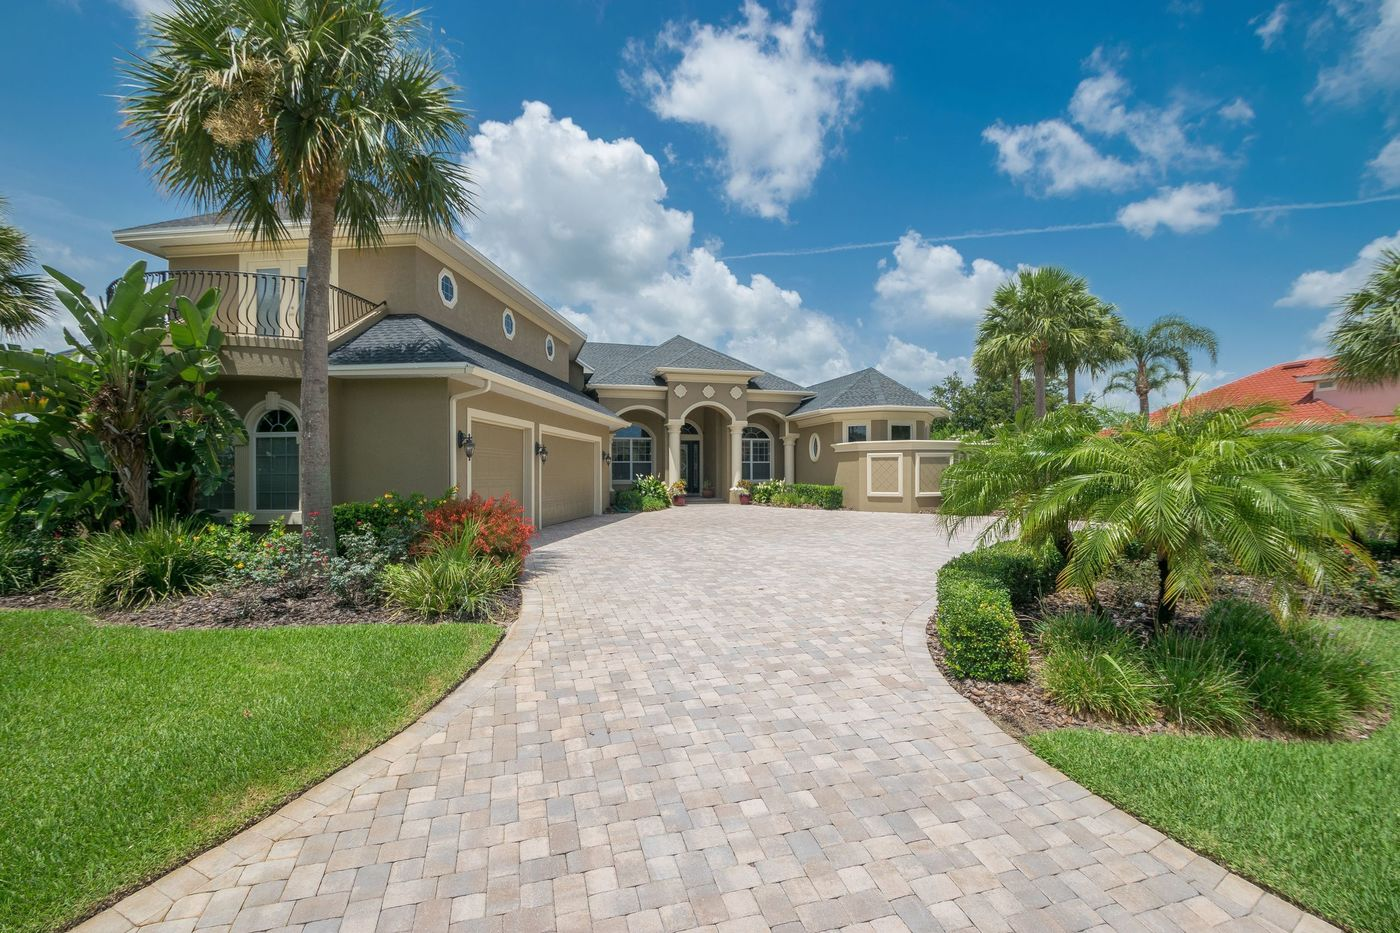 Homes for Sale in Renaissance Winter Haven